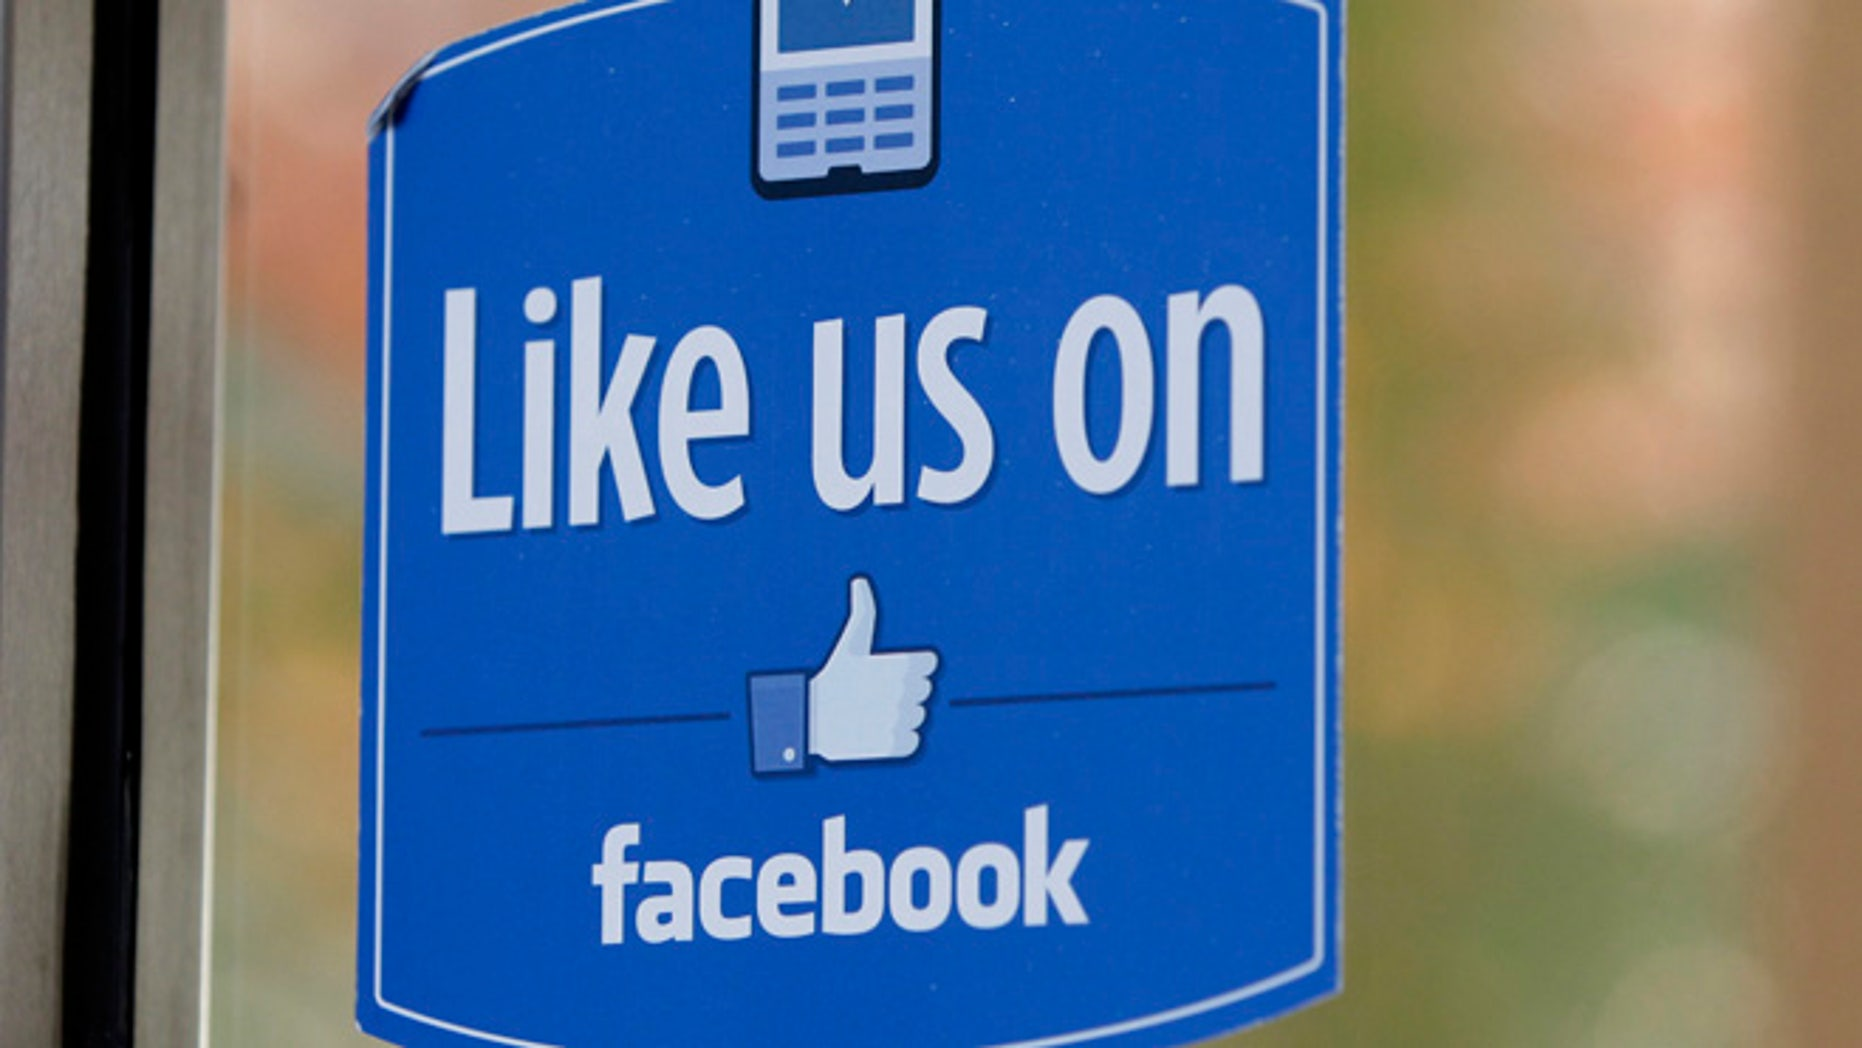 Facebook is working on adding Twitter-style hashtags to its service as a way of organizing conversations, sources say.